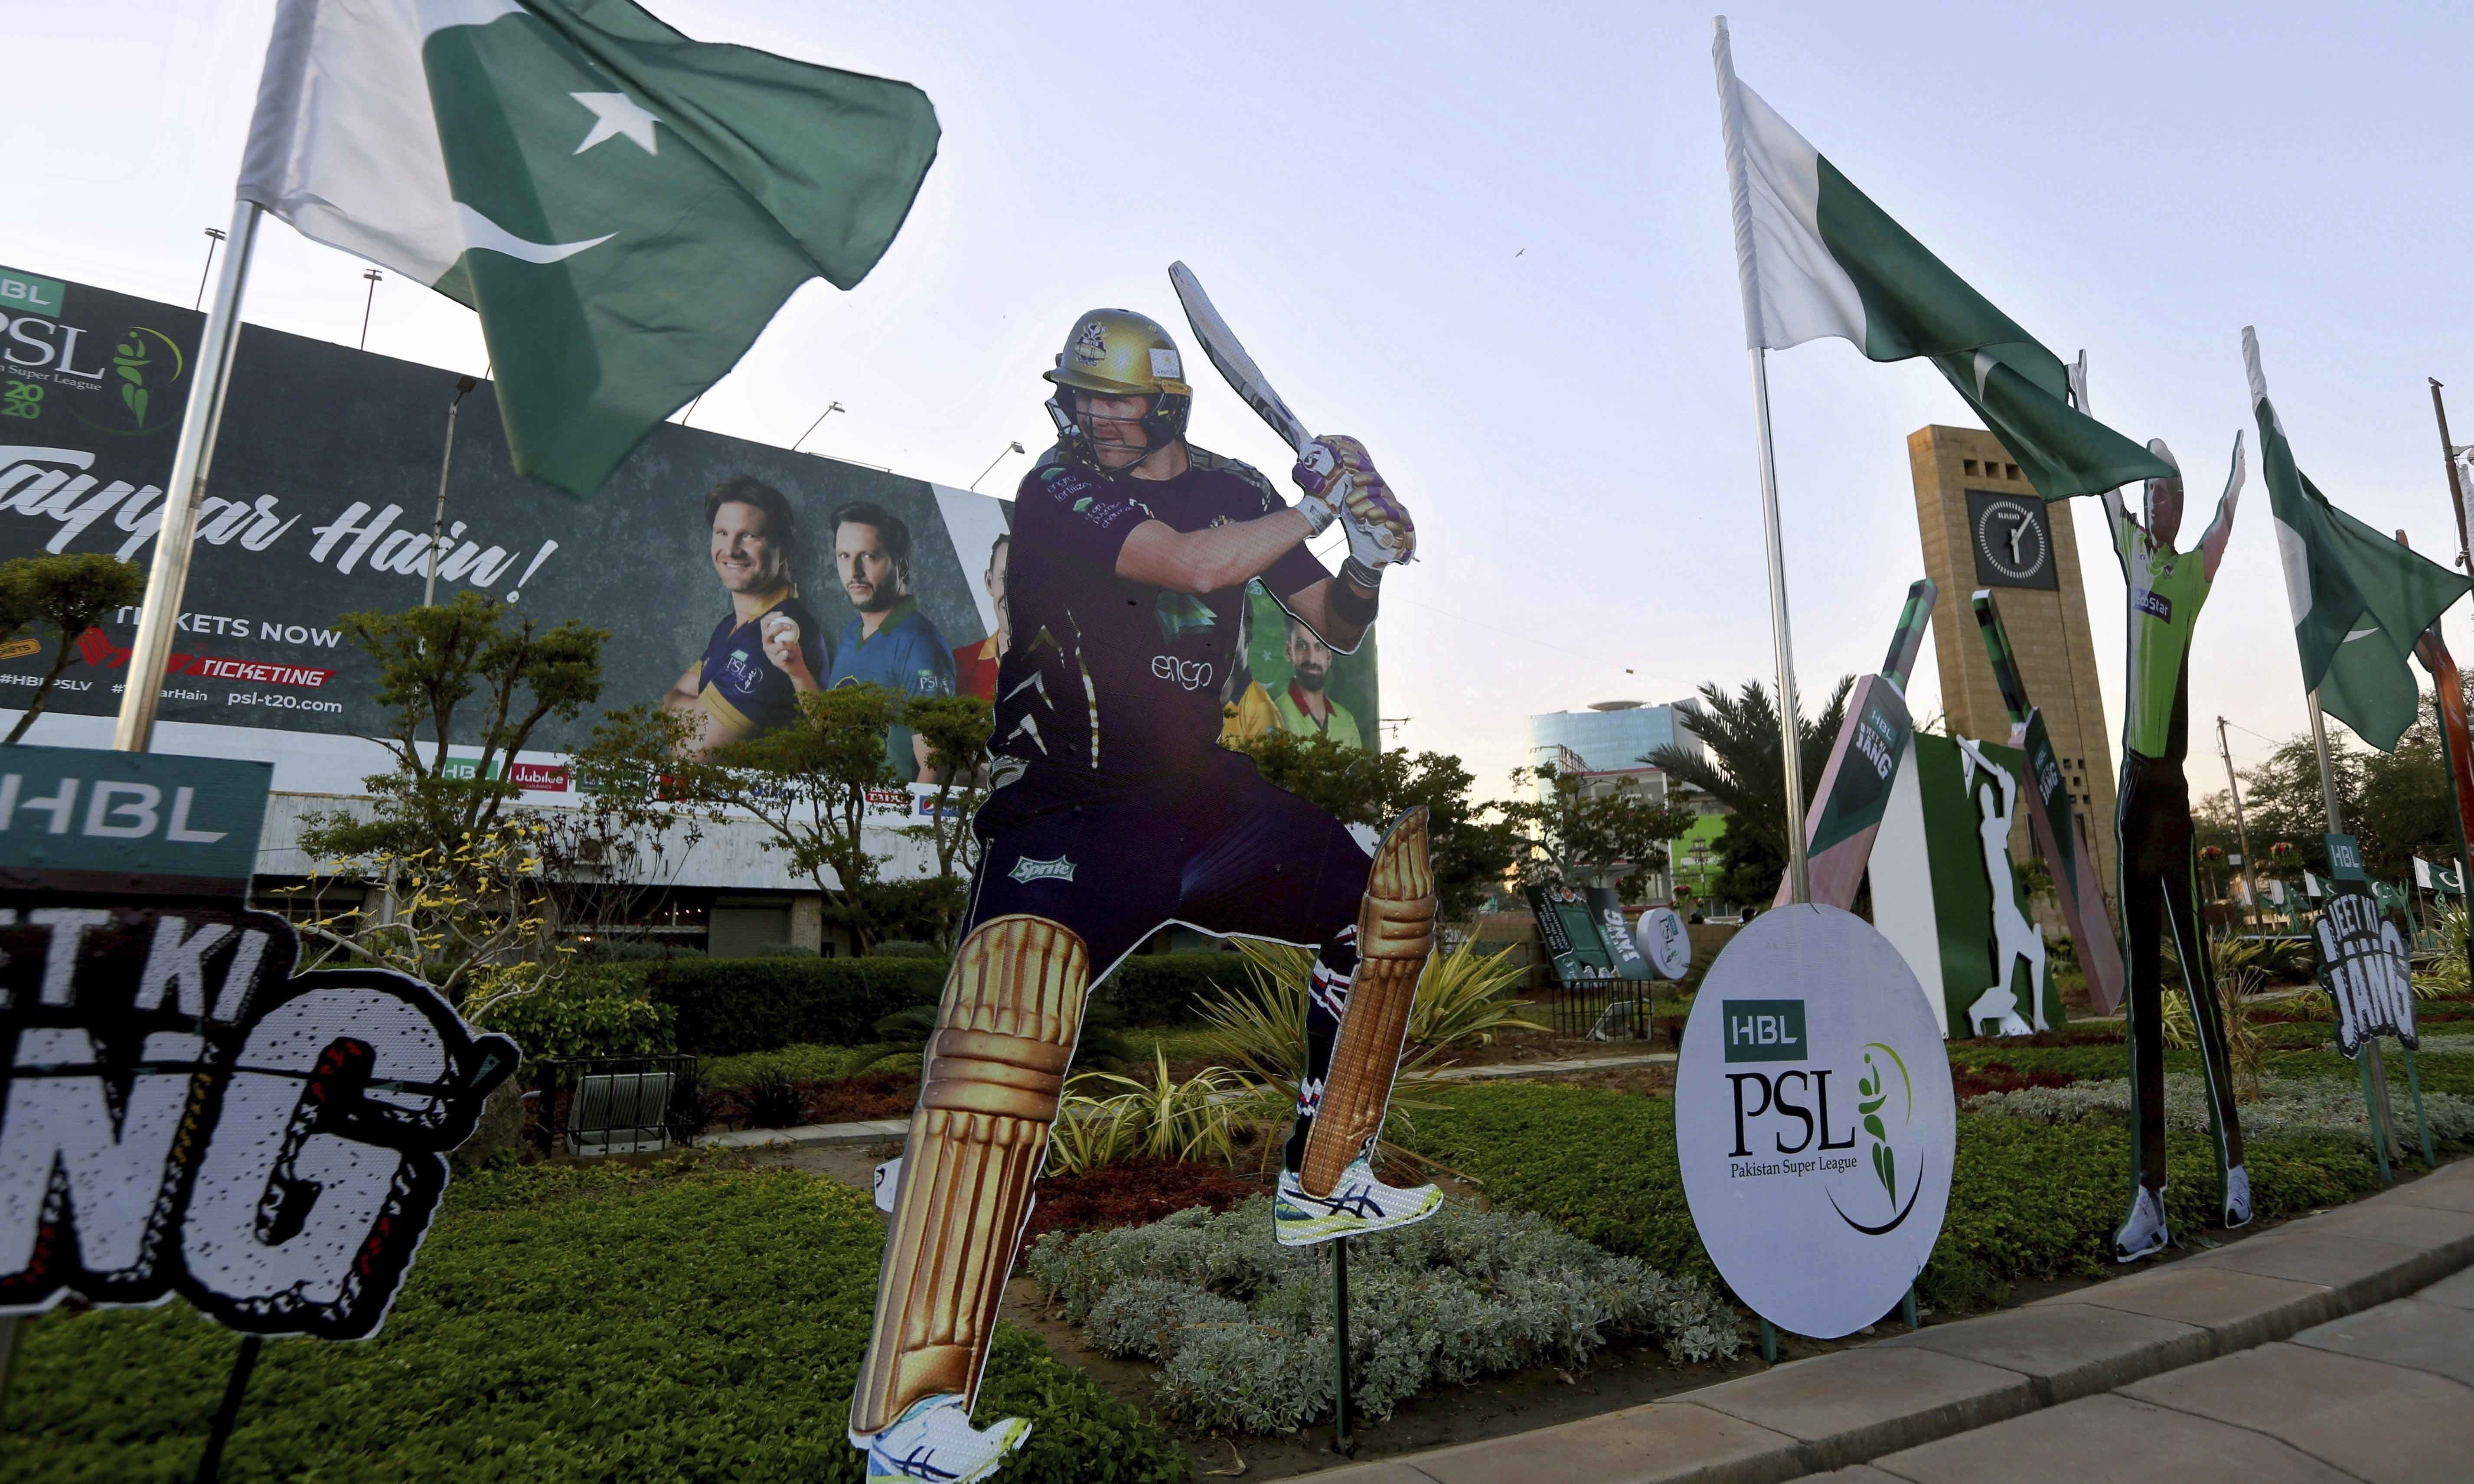 In this file photo, a cut-out of a cricketer Shane Watson of Australia, displays along roadside in preparation of the upcoming Pakistan Super League, in Karachi, Pakistan. — AP/File